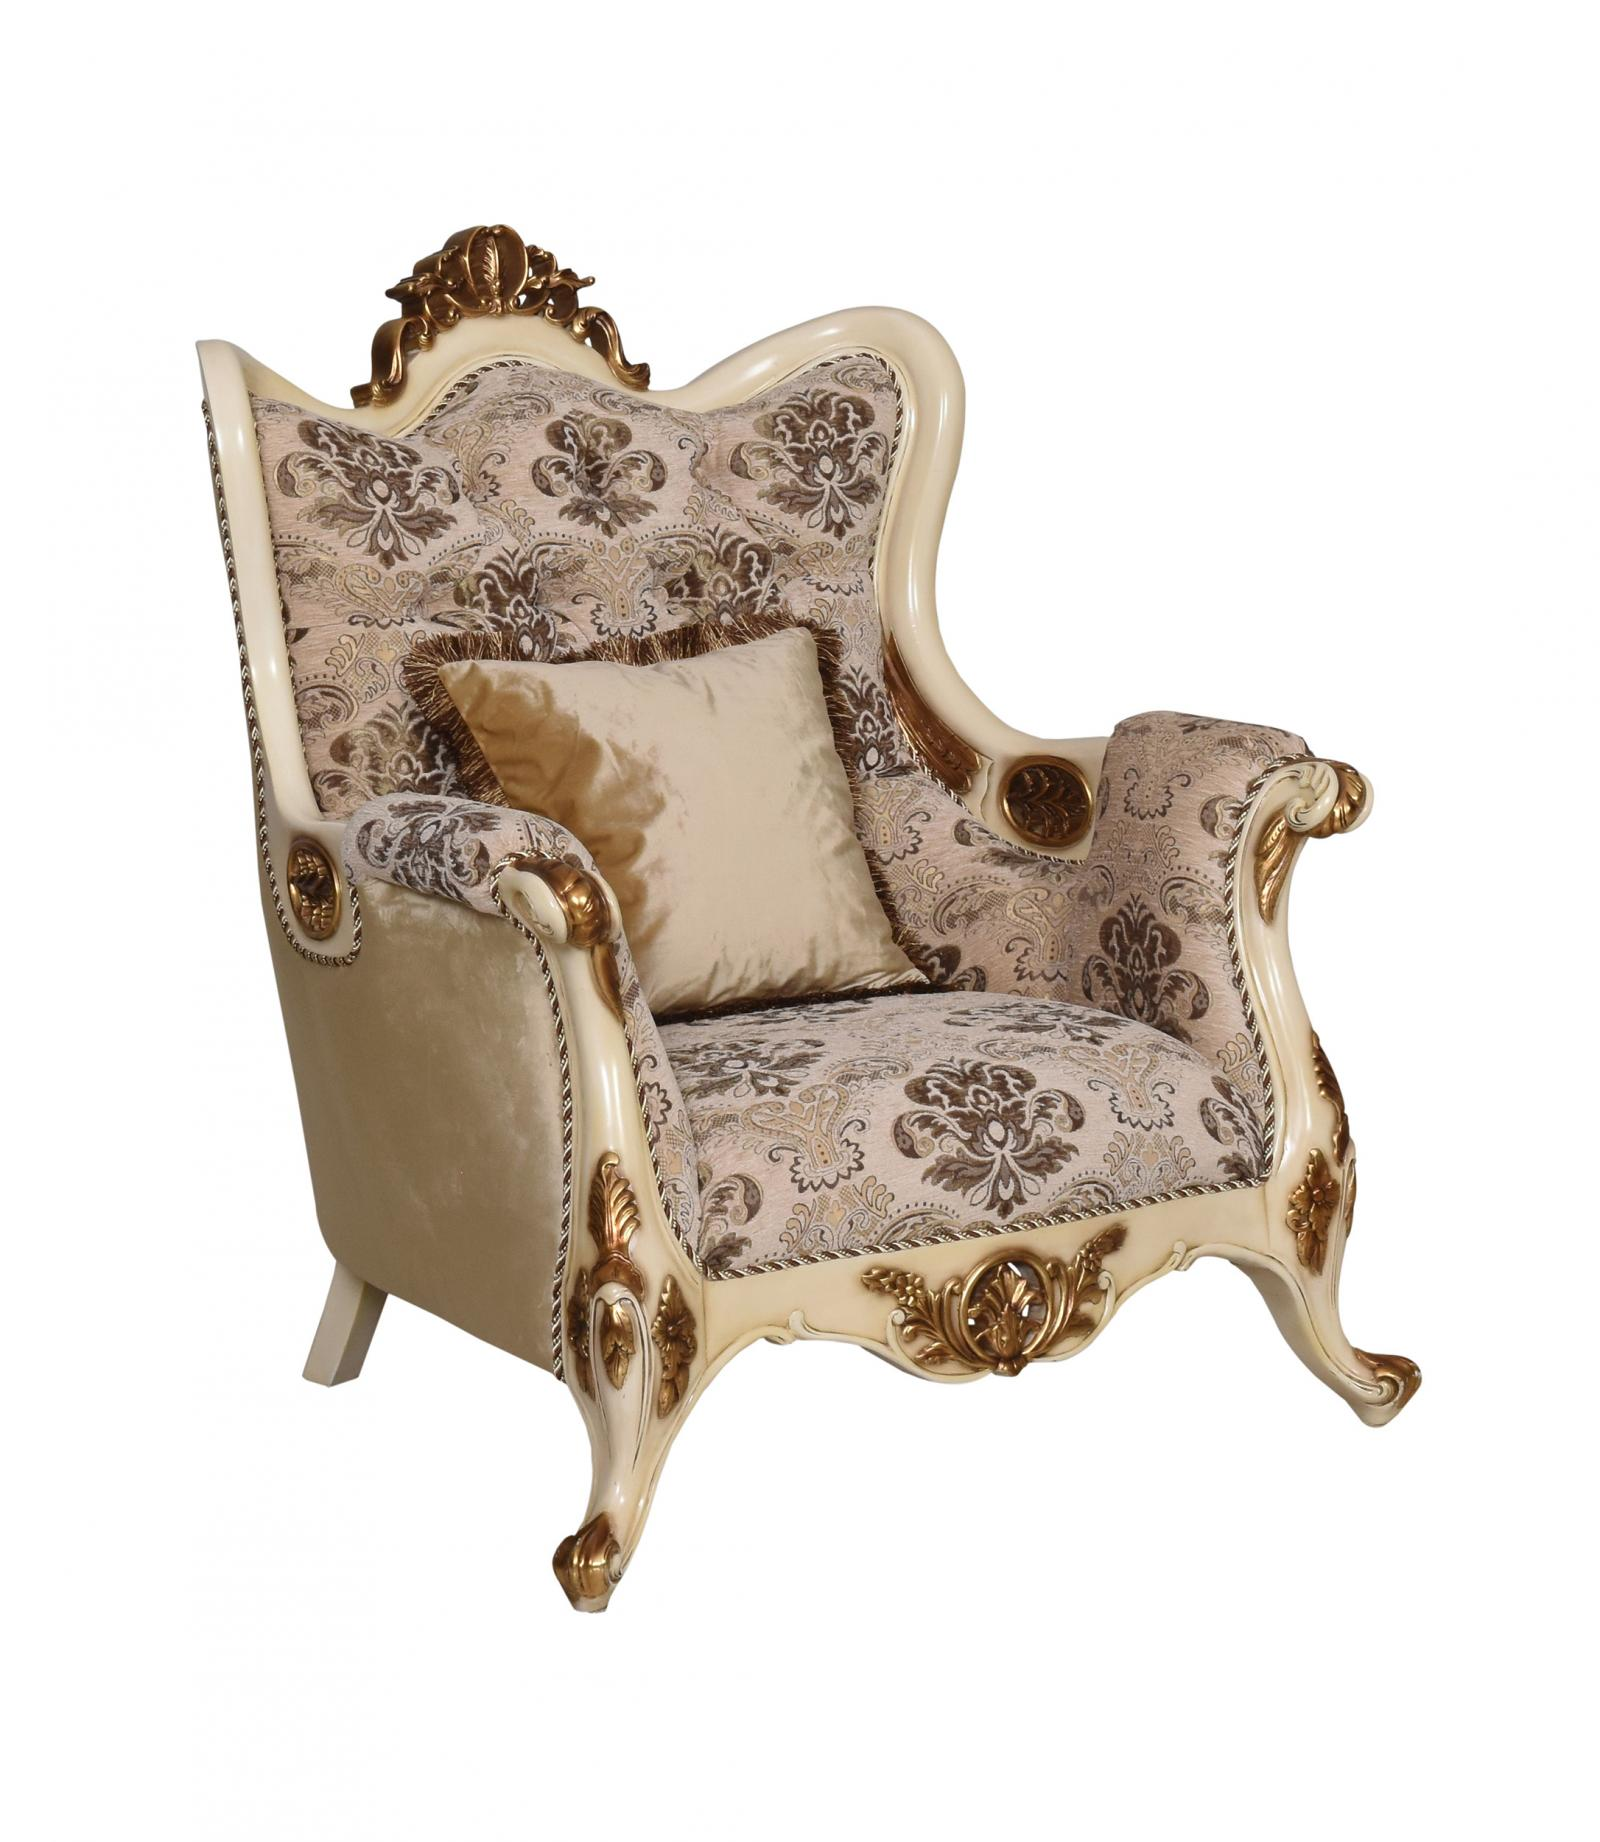 Classic  Traditional Beige  Gold  Antique Wood  Solid Hardwood and Fabric Arm Chair EUROPEAN FURNITURE 37008-C